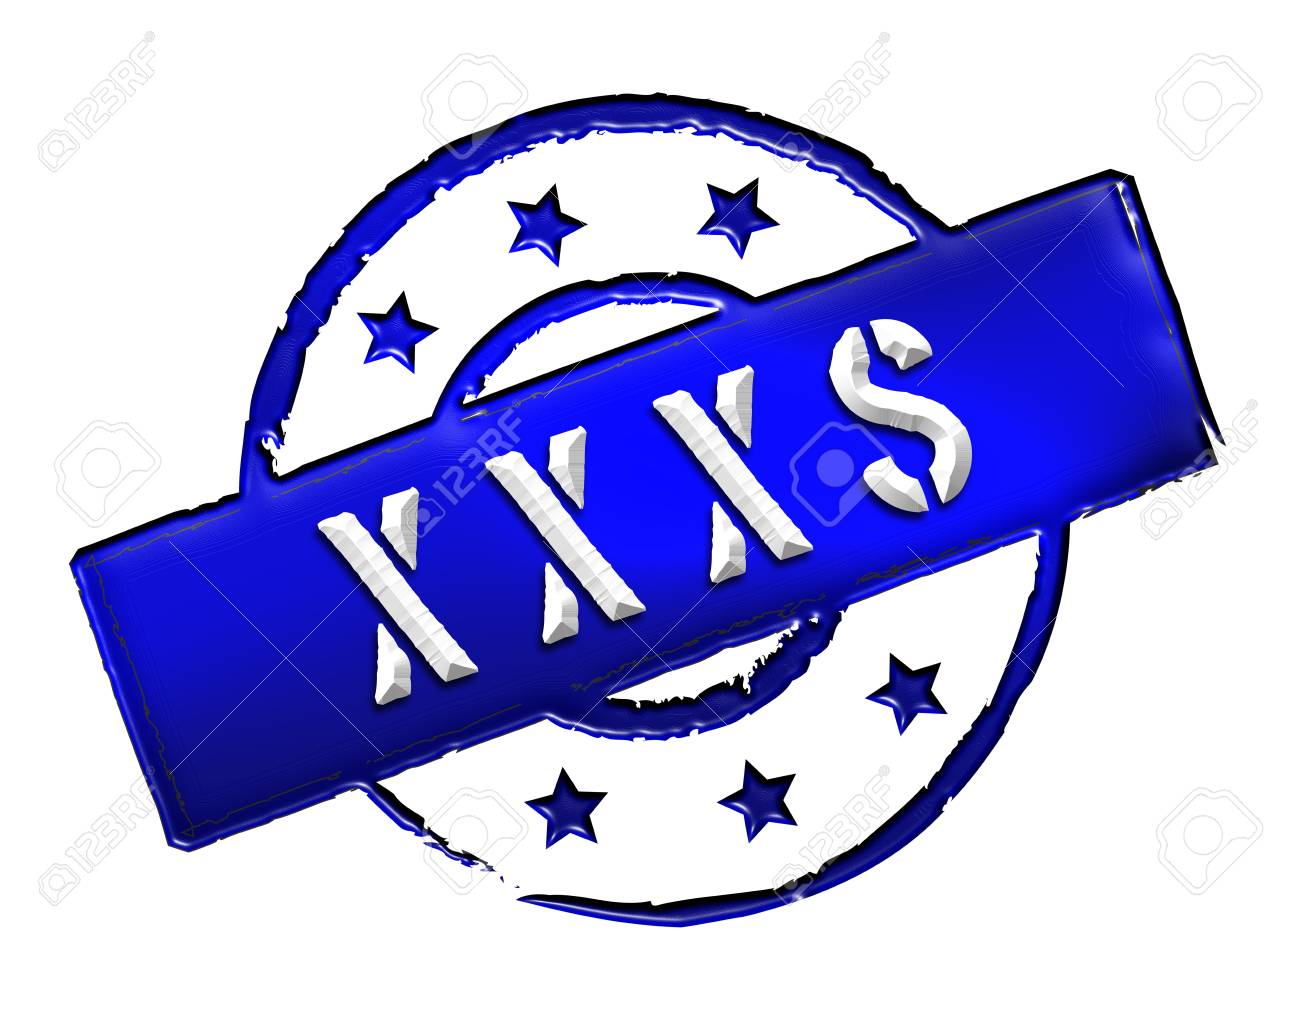 Sign, symbol, stamp or icon for your presentation, for websites and many more named XXXS Stock Photo - 13802104